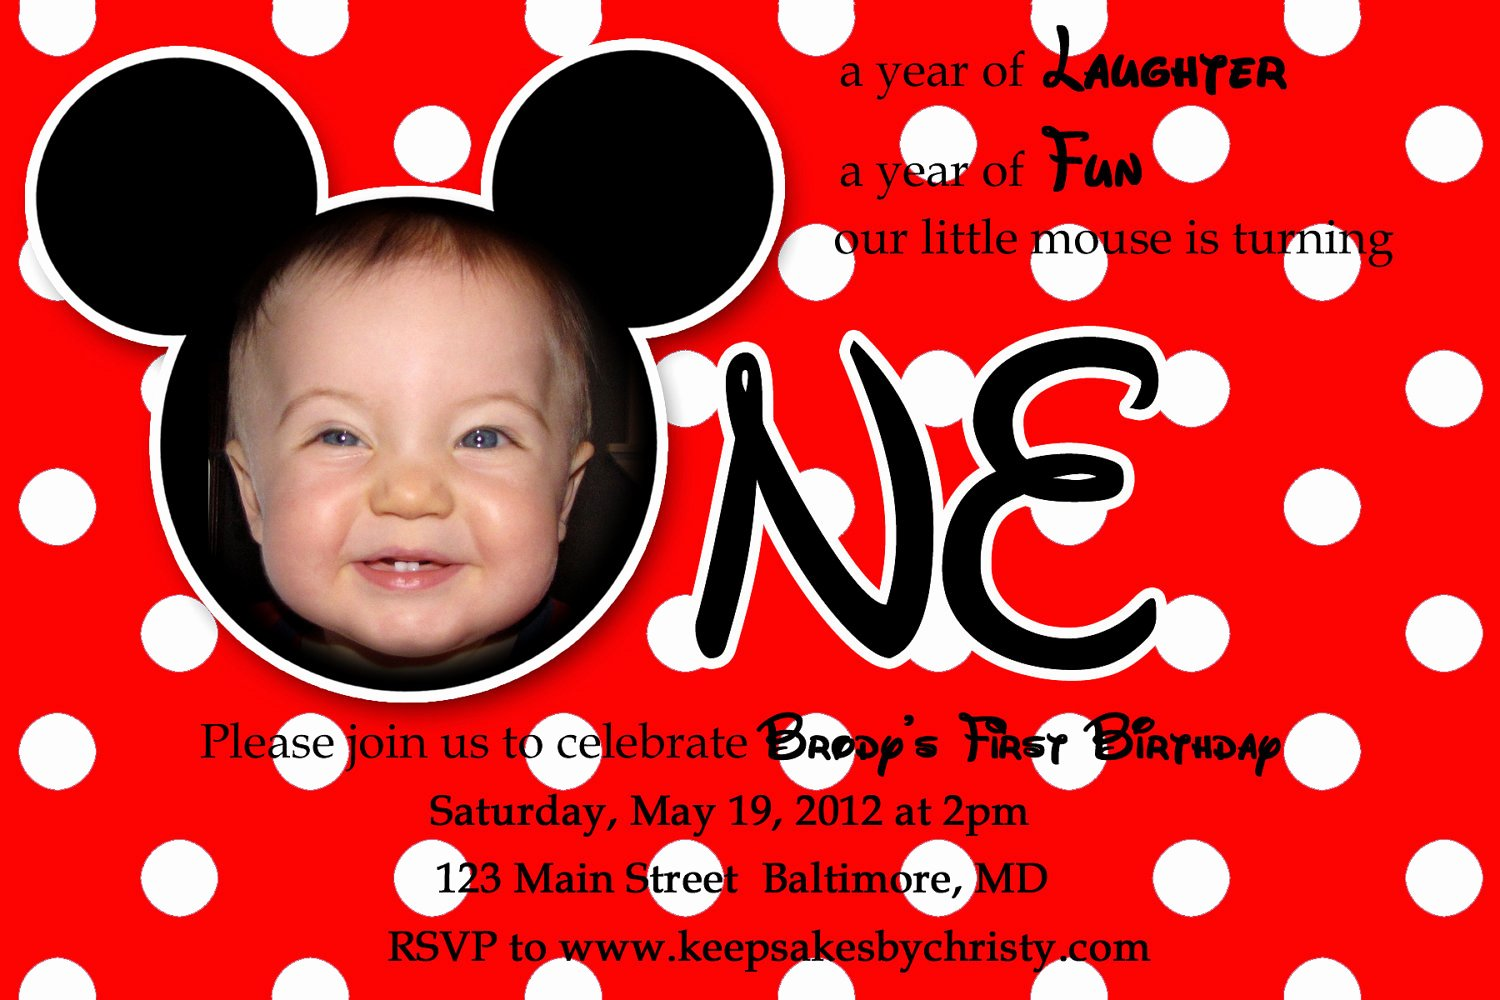 Mickey Mouse Birthday Party Invitations Elegant First Birthday Party Invitation Ideas – Bagvania Free Printable Invitation Template